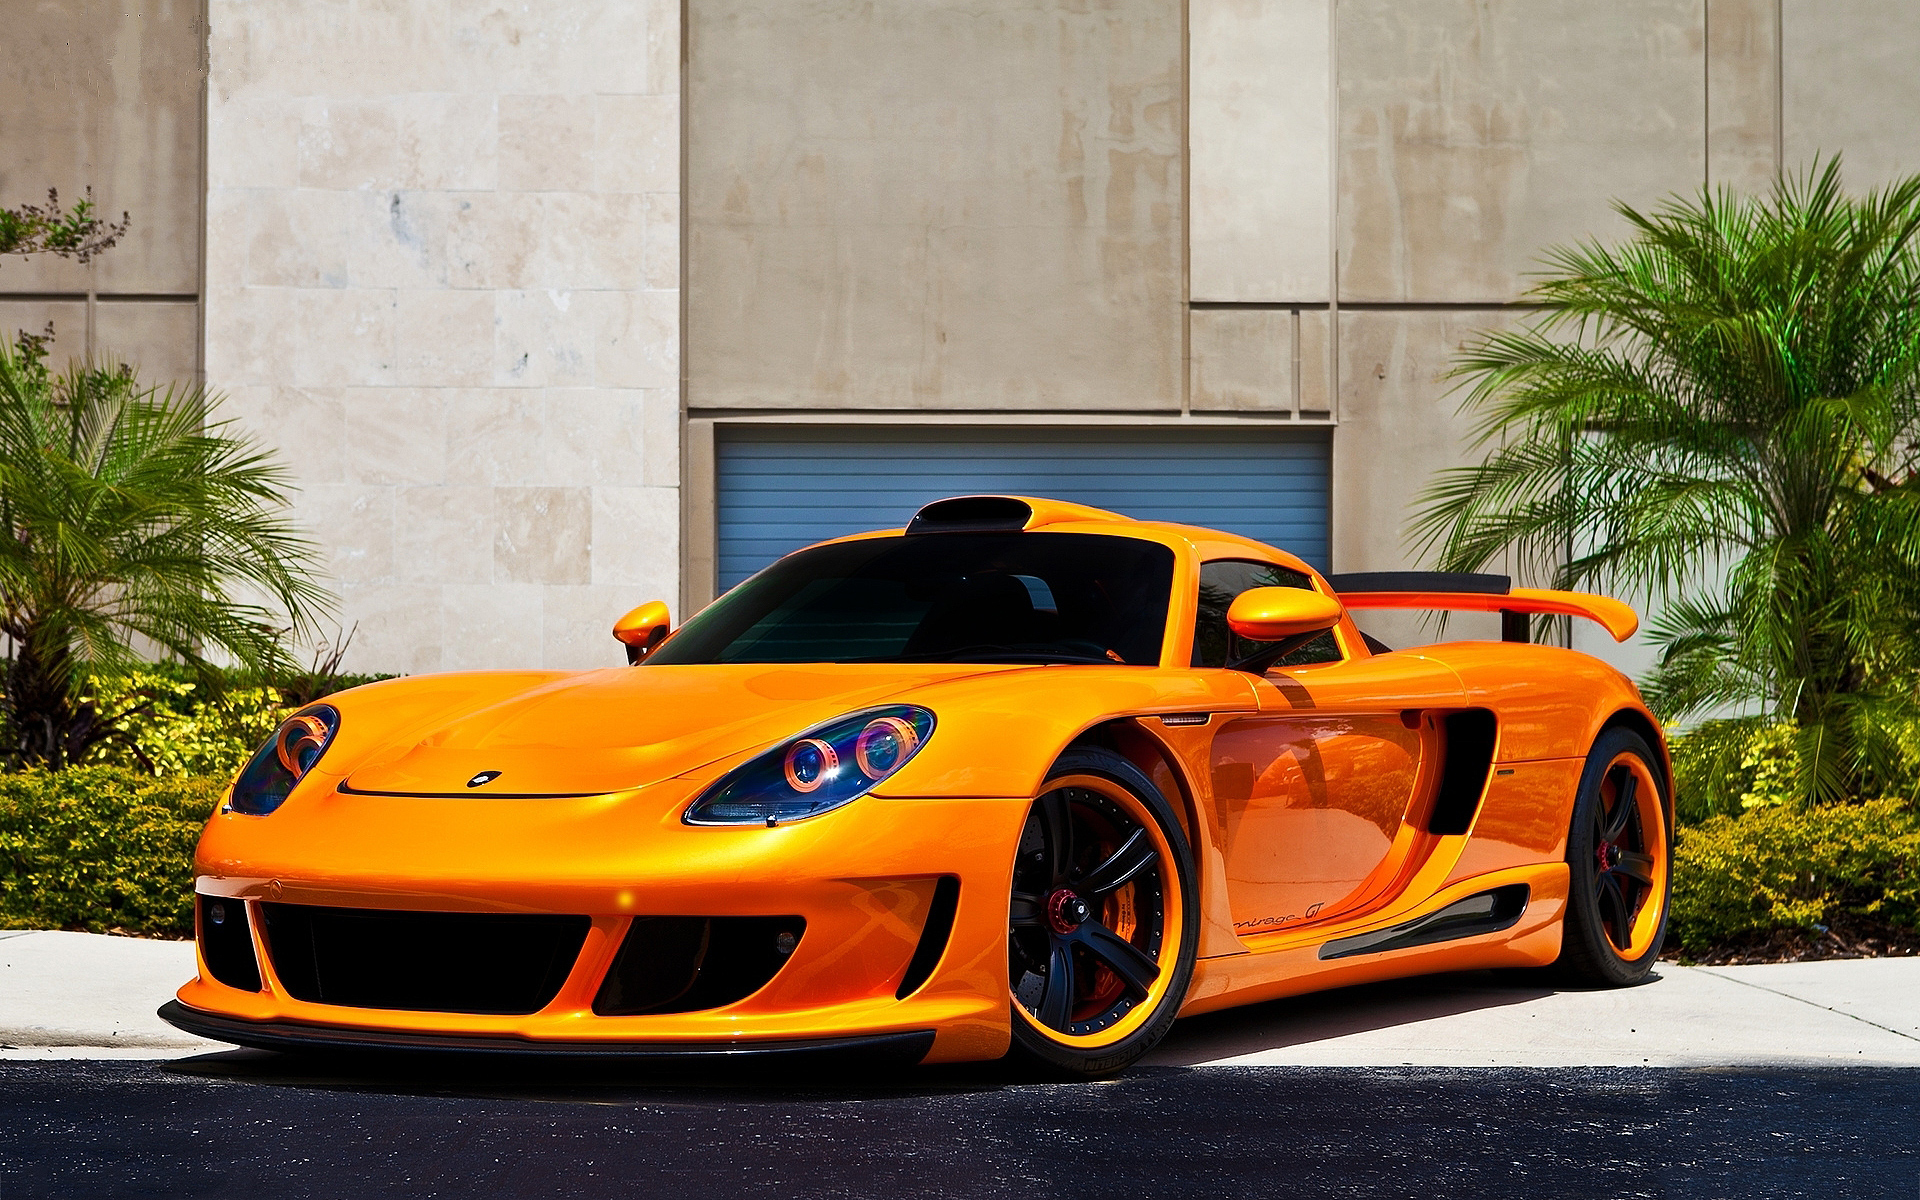 Porsche Carrera Gt Images Porsche Carrera Gt Hd Wallpaper